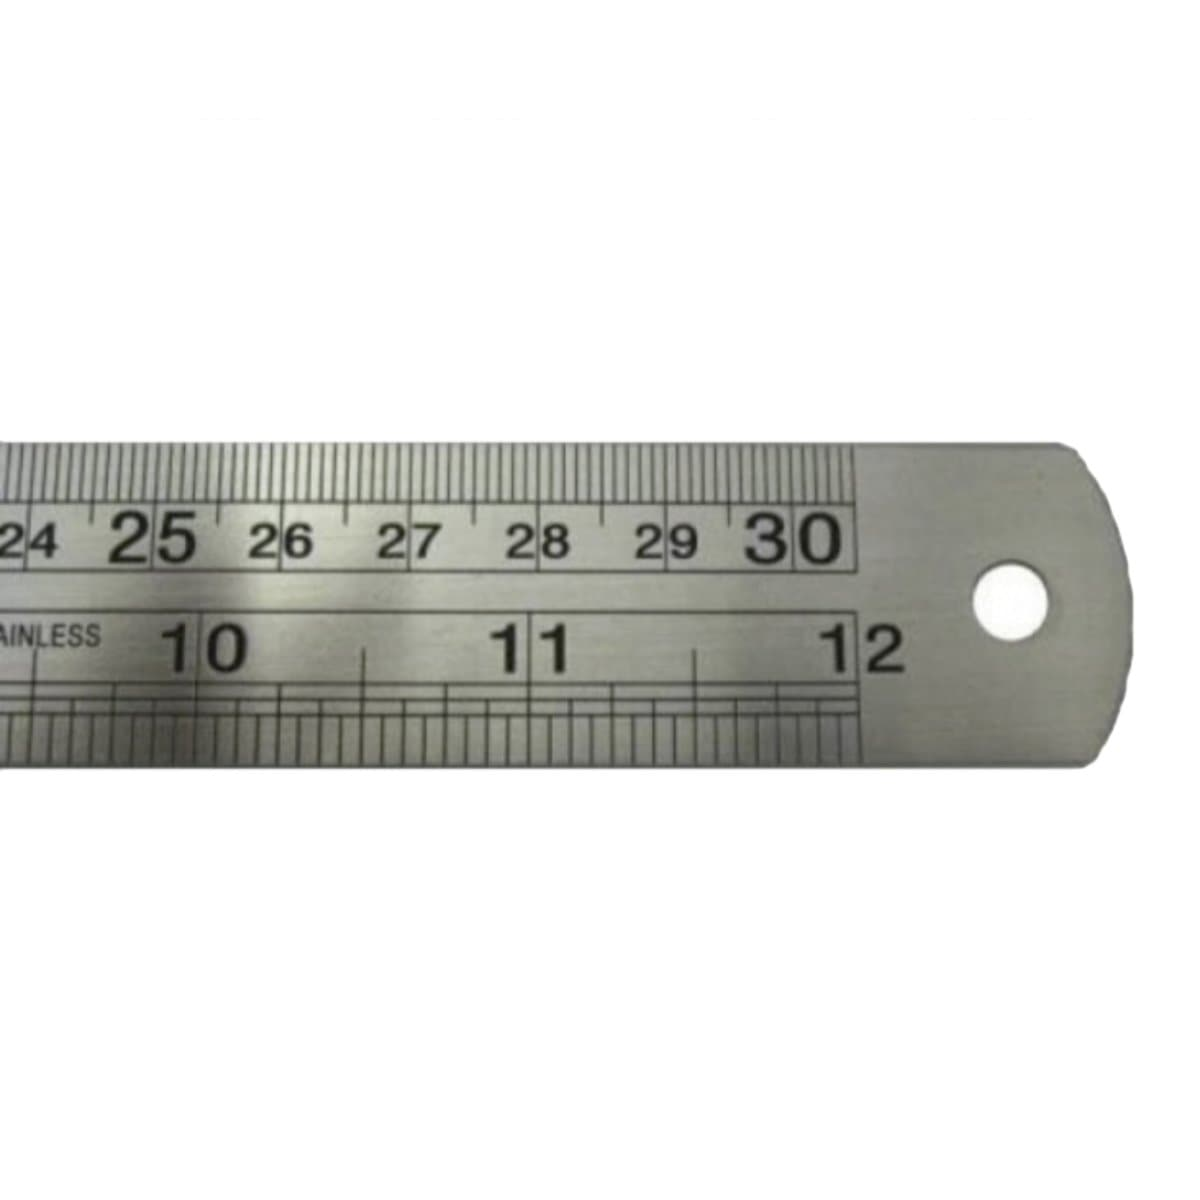 Modest Steel Ruler 12inches / 30cm